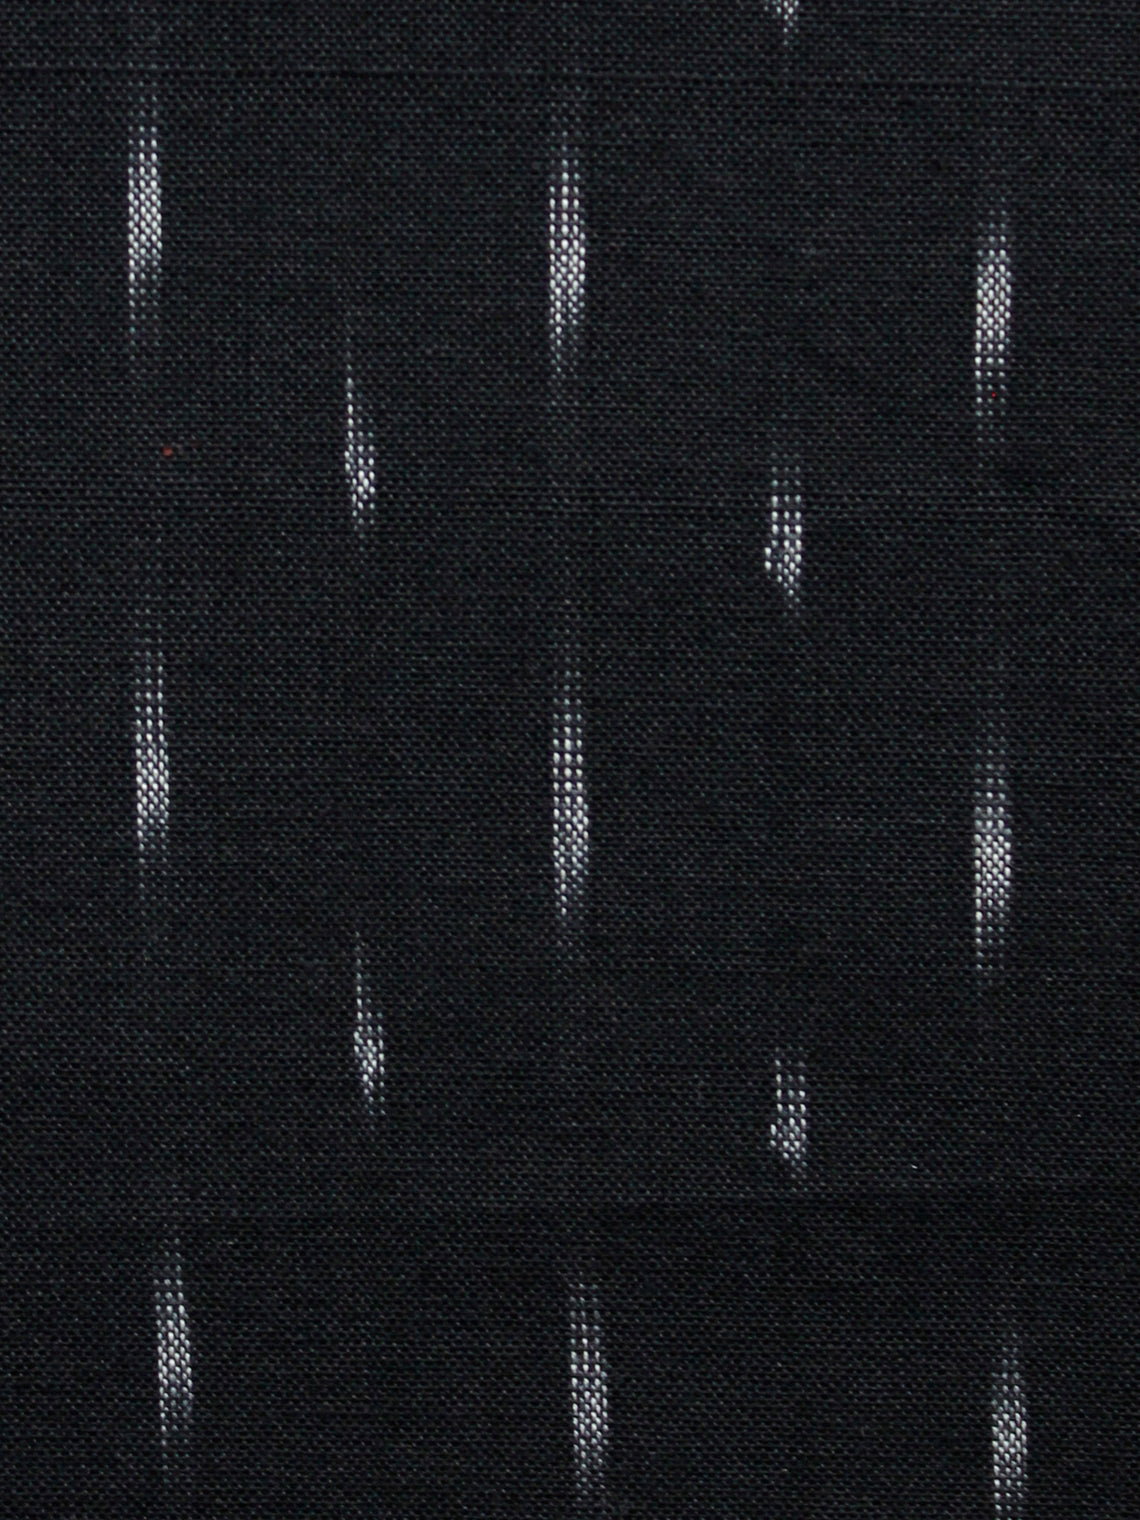 Black White Pochampally Hand Woven Ikat Cotton Fabric Per Meter - F002F1466